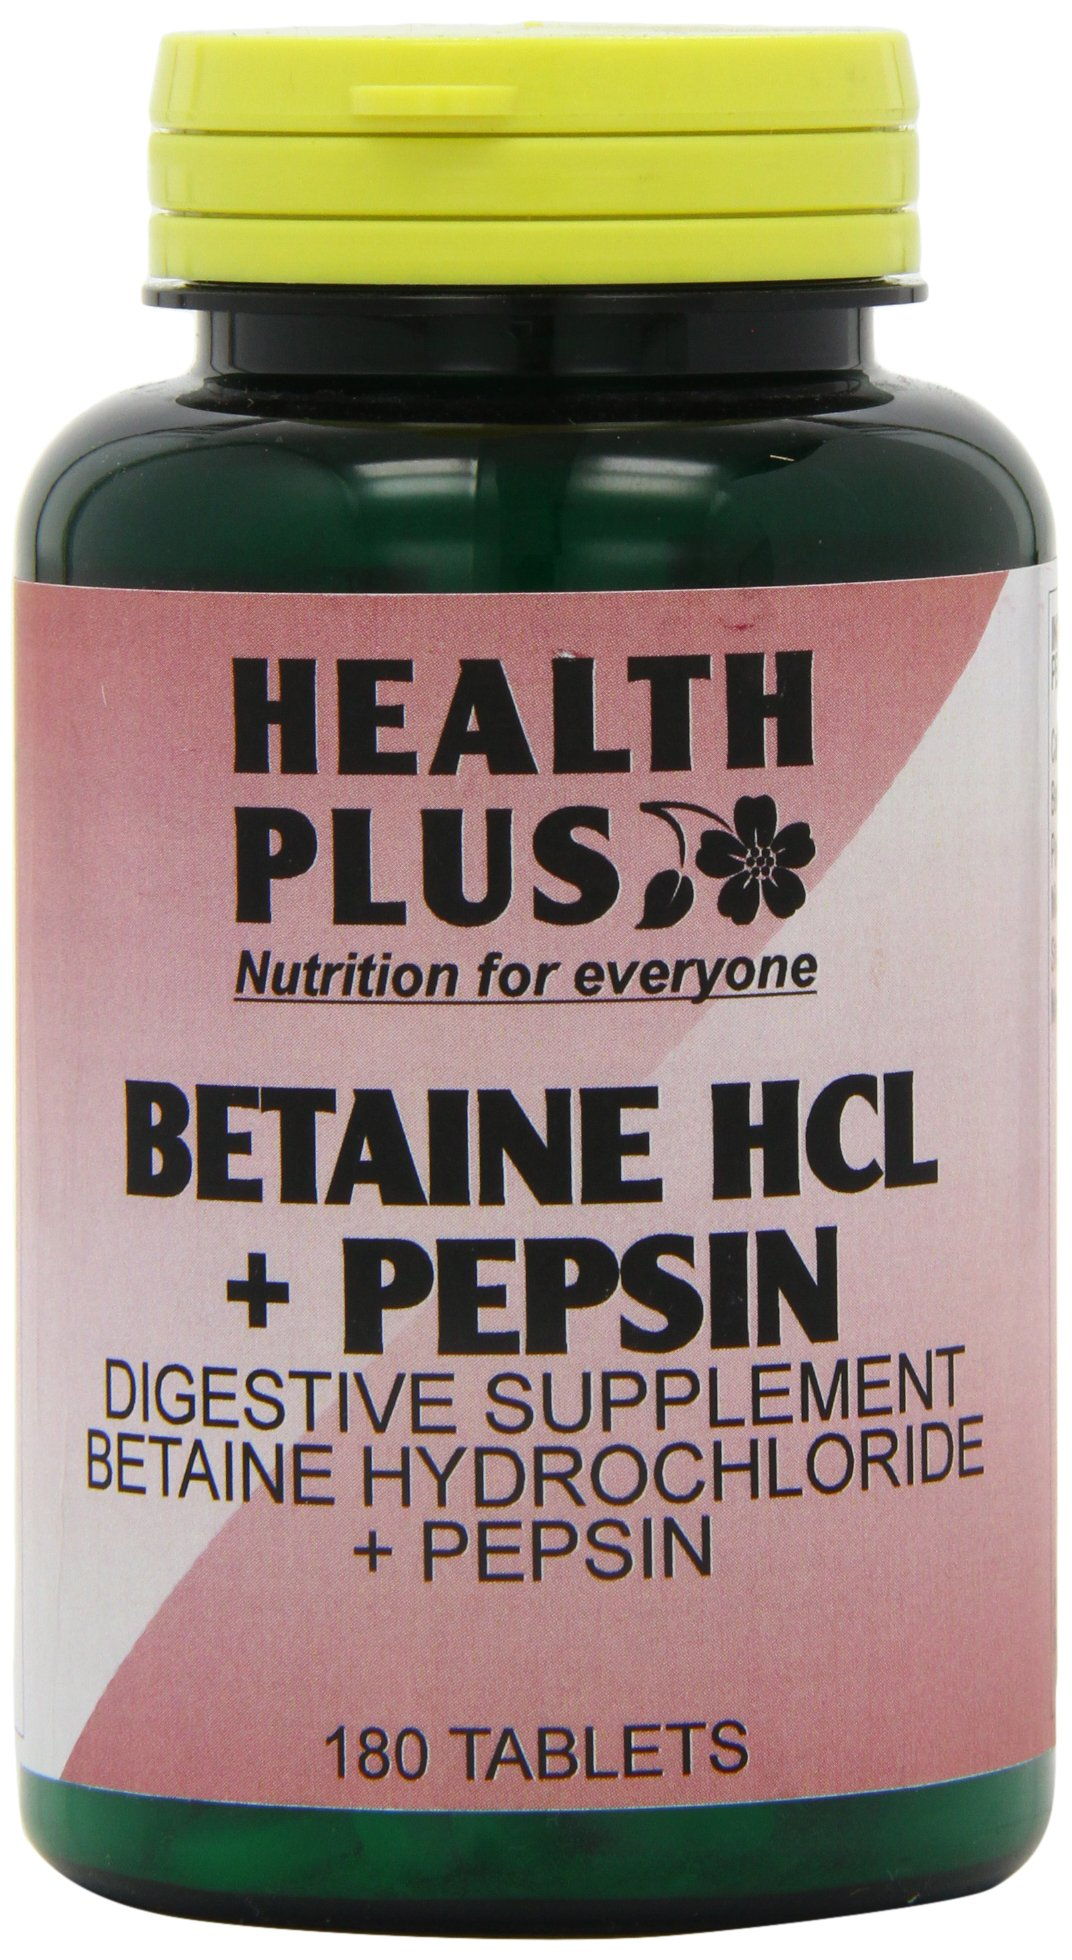 Betaine hcl supplements